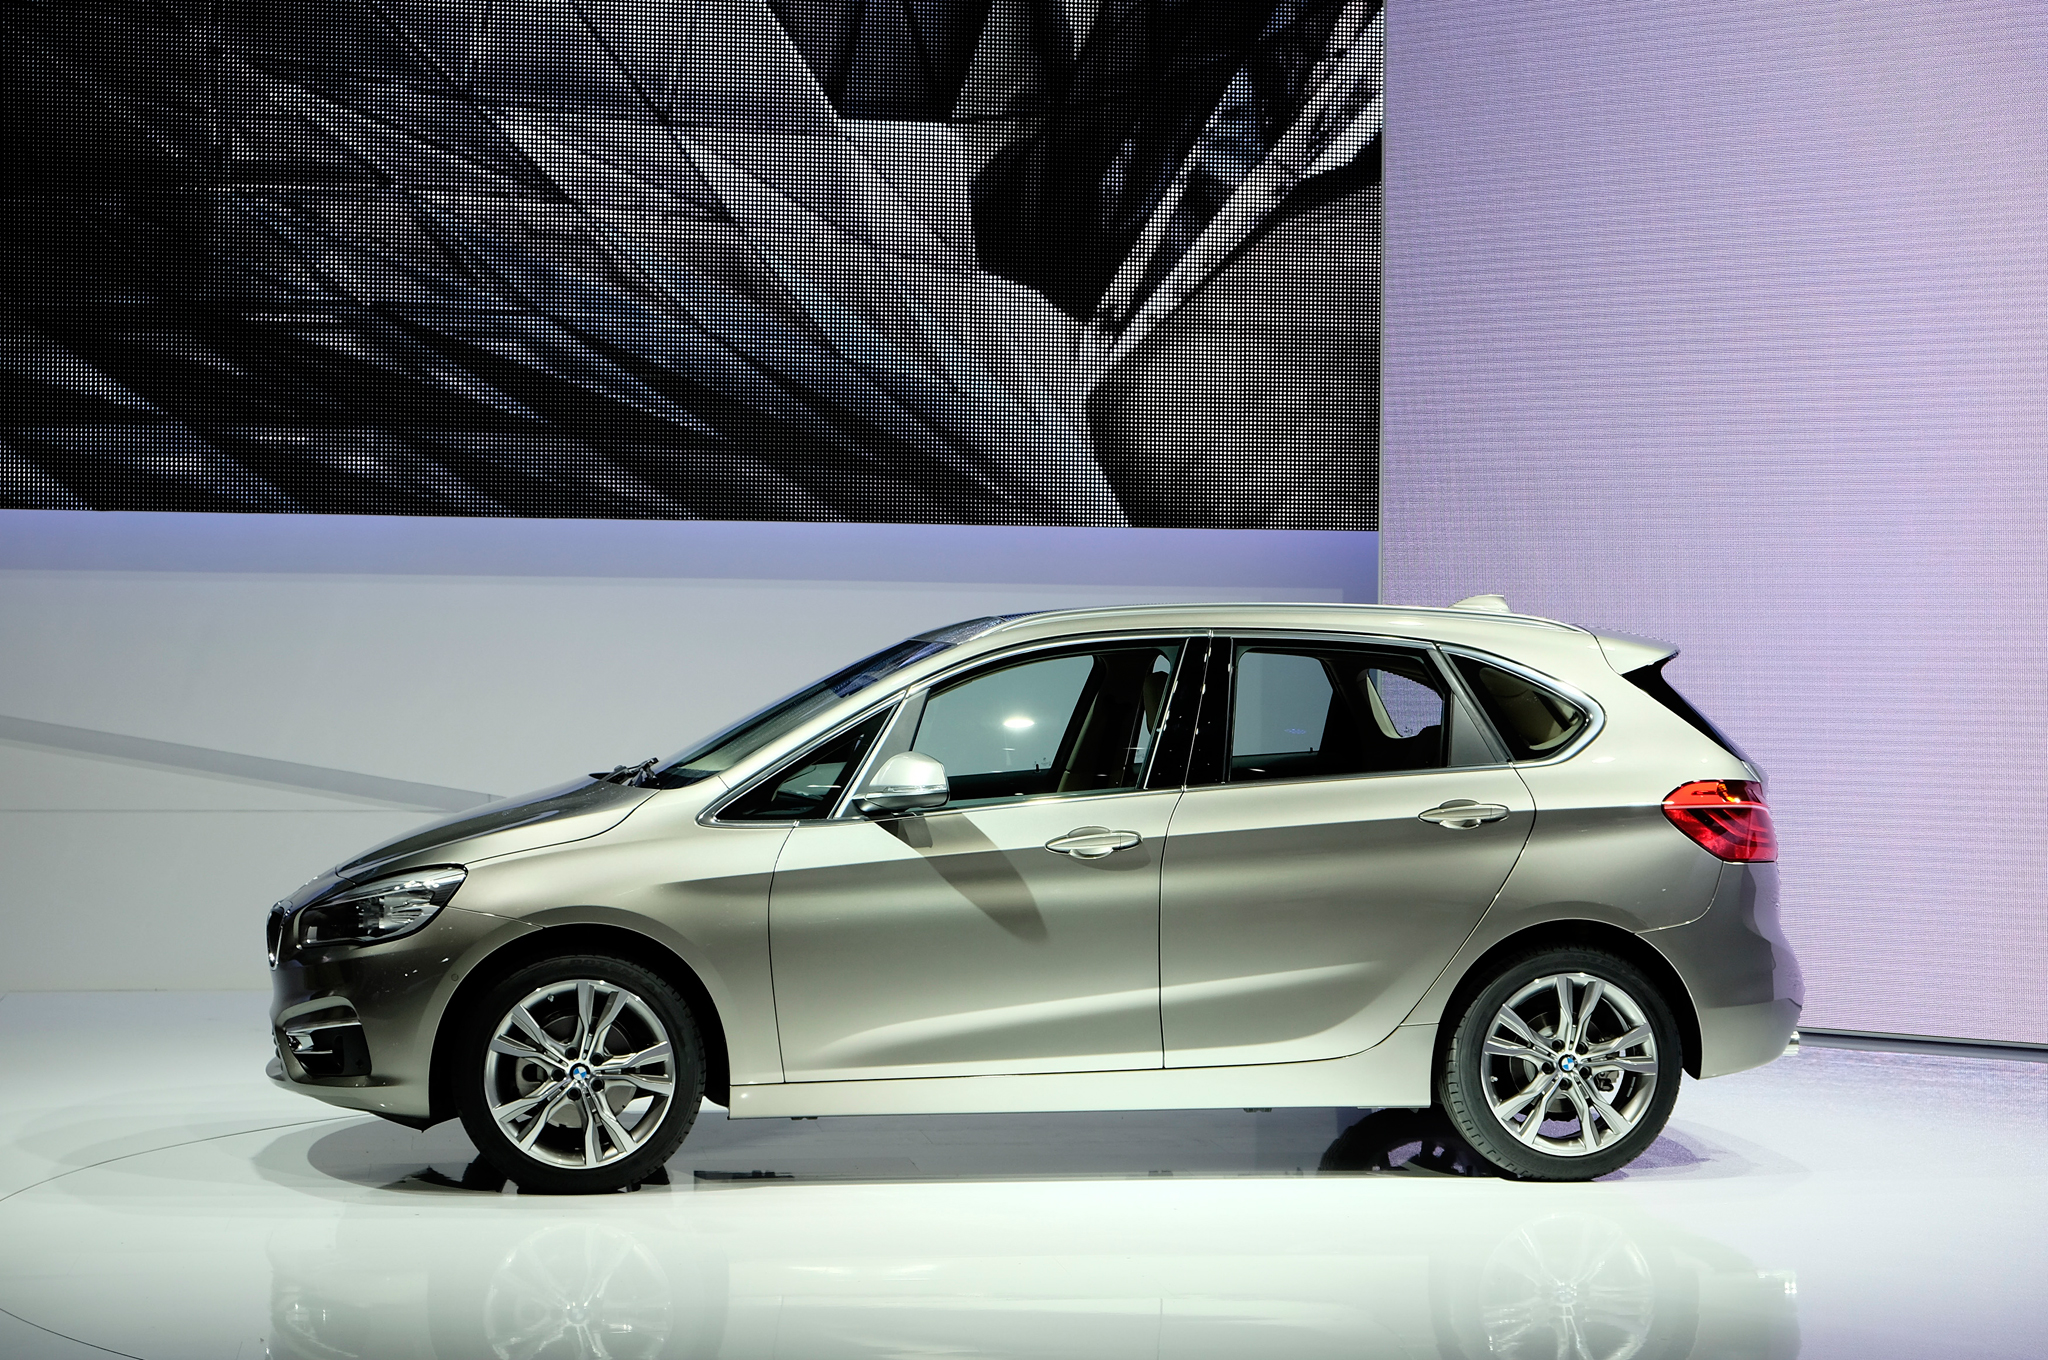 2015 BMW 2 Series Active Tourer 225i Left Side Auto Show